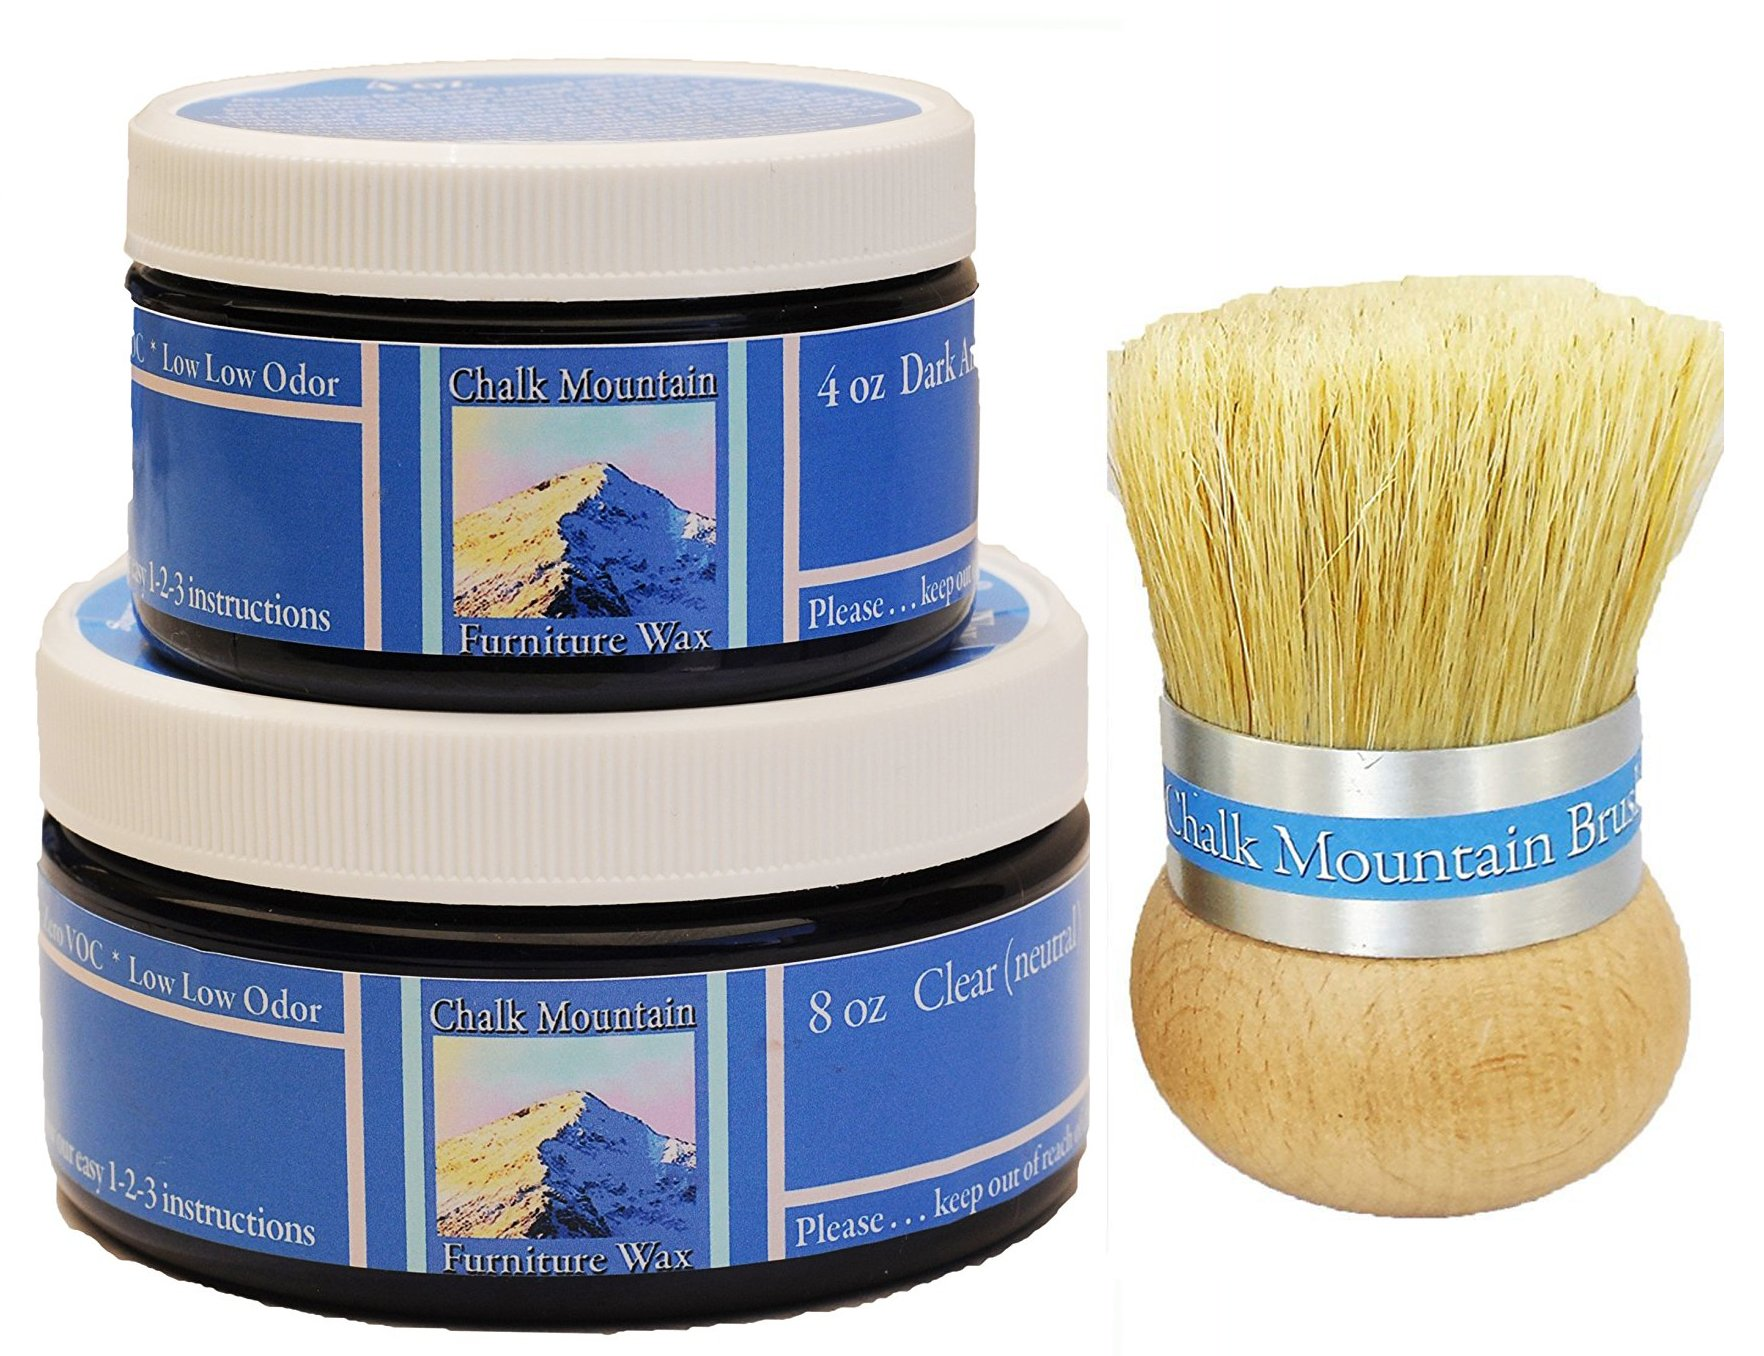 GIFT BOX INCLUDED!!! Chalk Mountain Brushes 3pack Natural Furniture Finishing wax kit - (8oz Clear & 4oz Dark Antiquing, Palm Brush)